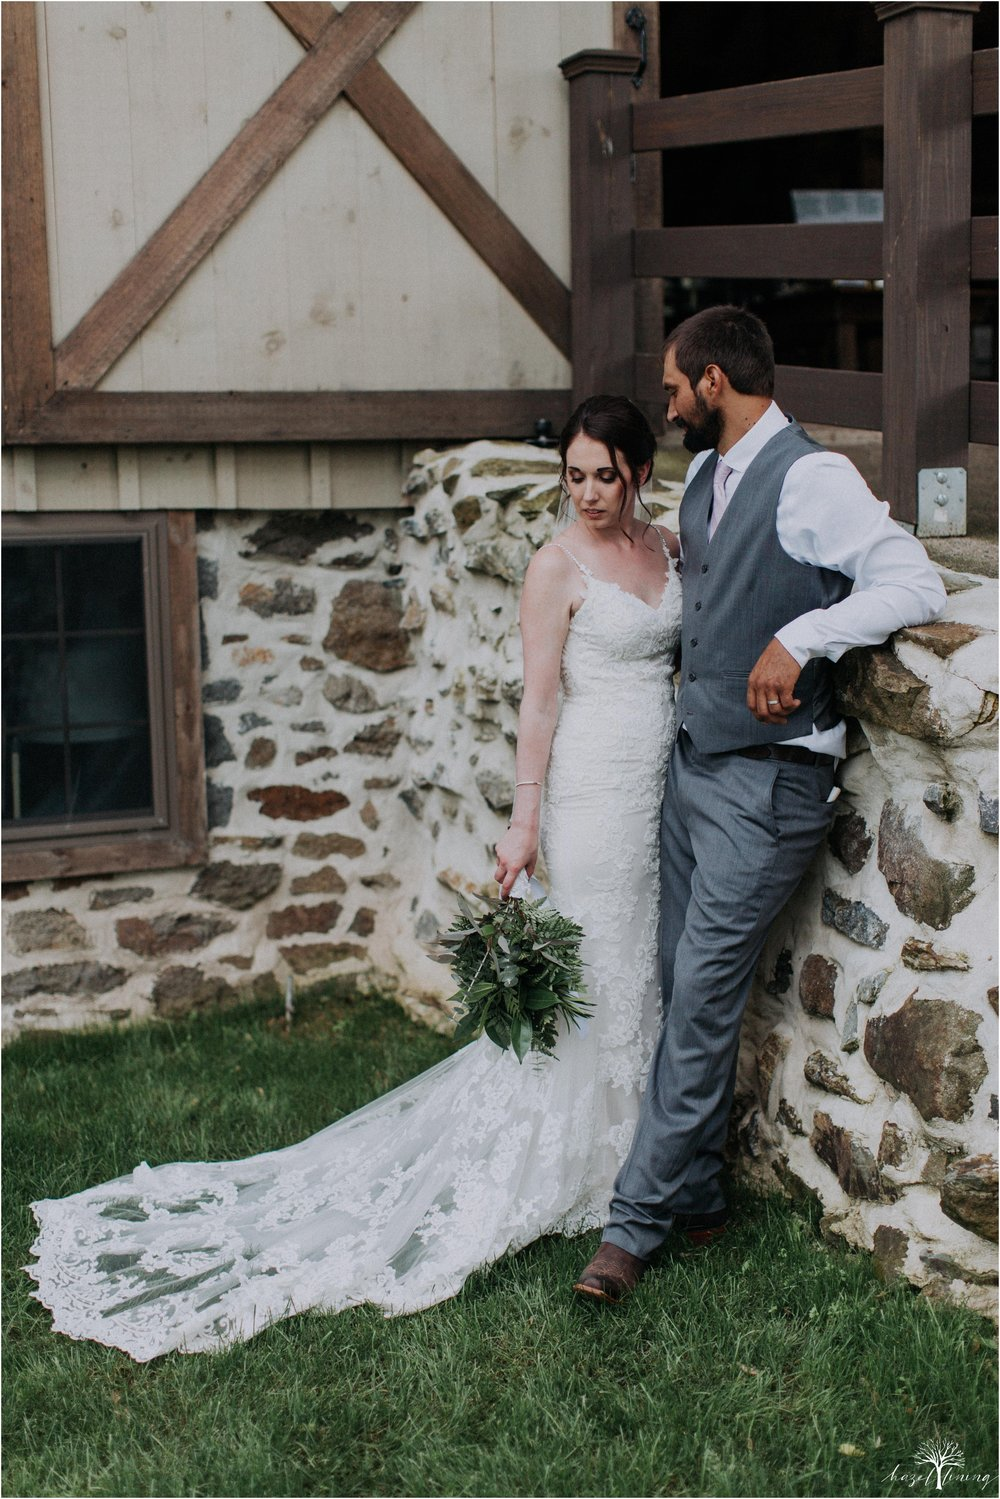 hazel-lining-travel-wedding-elopement-photography-lisa-landon-shoemaker-the-farm-bakery-and-events-bucks-county-quakertown-pennsylvania-summer-country-outdoor-farm-wedding_0100.jpg